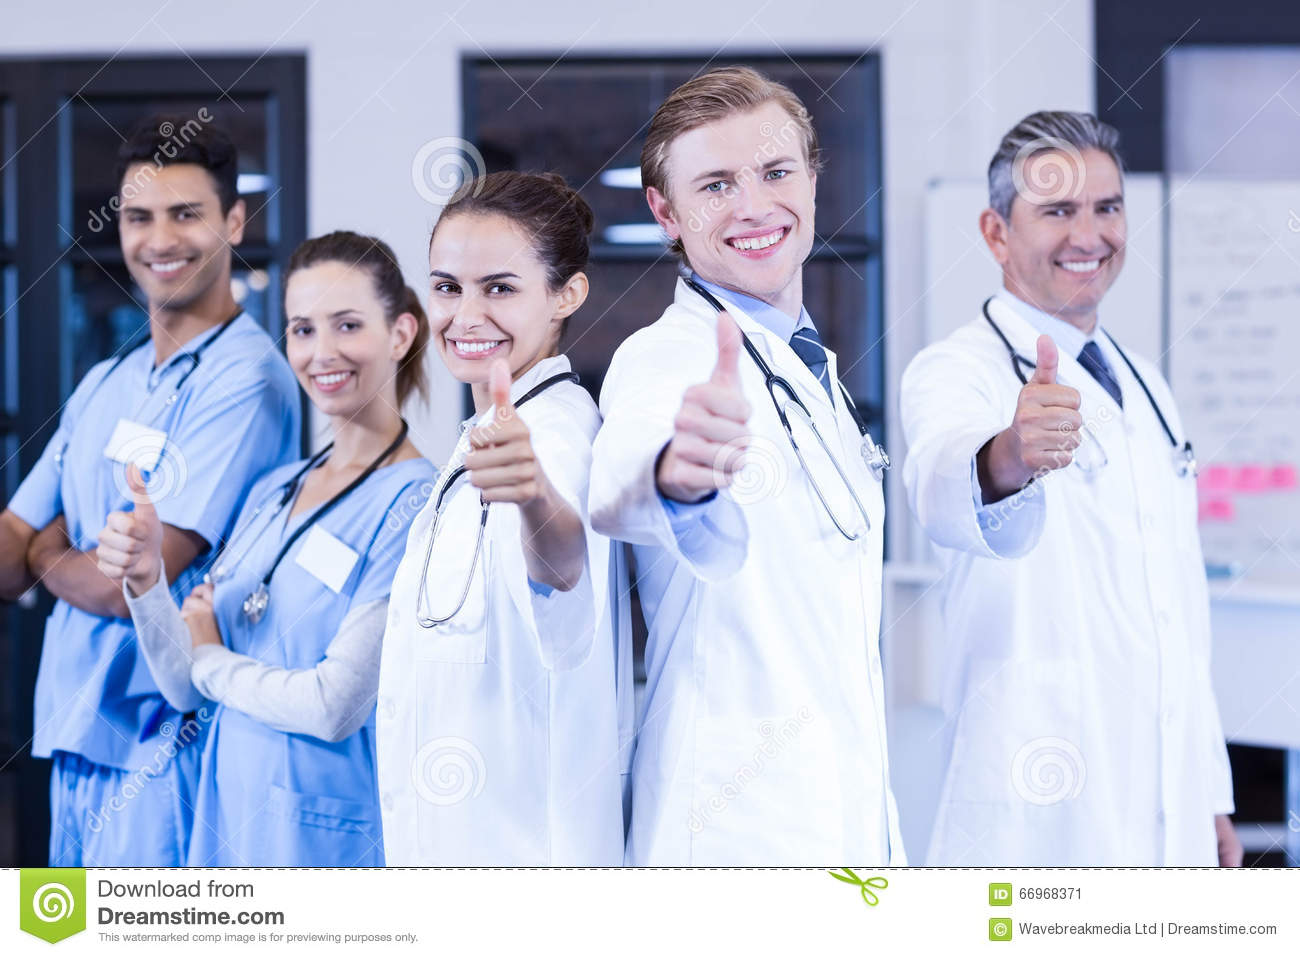 Medical team putting their thumbs up and smiling